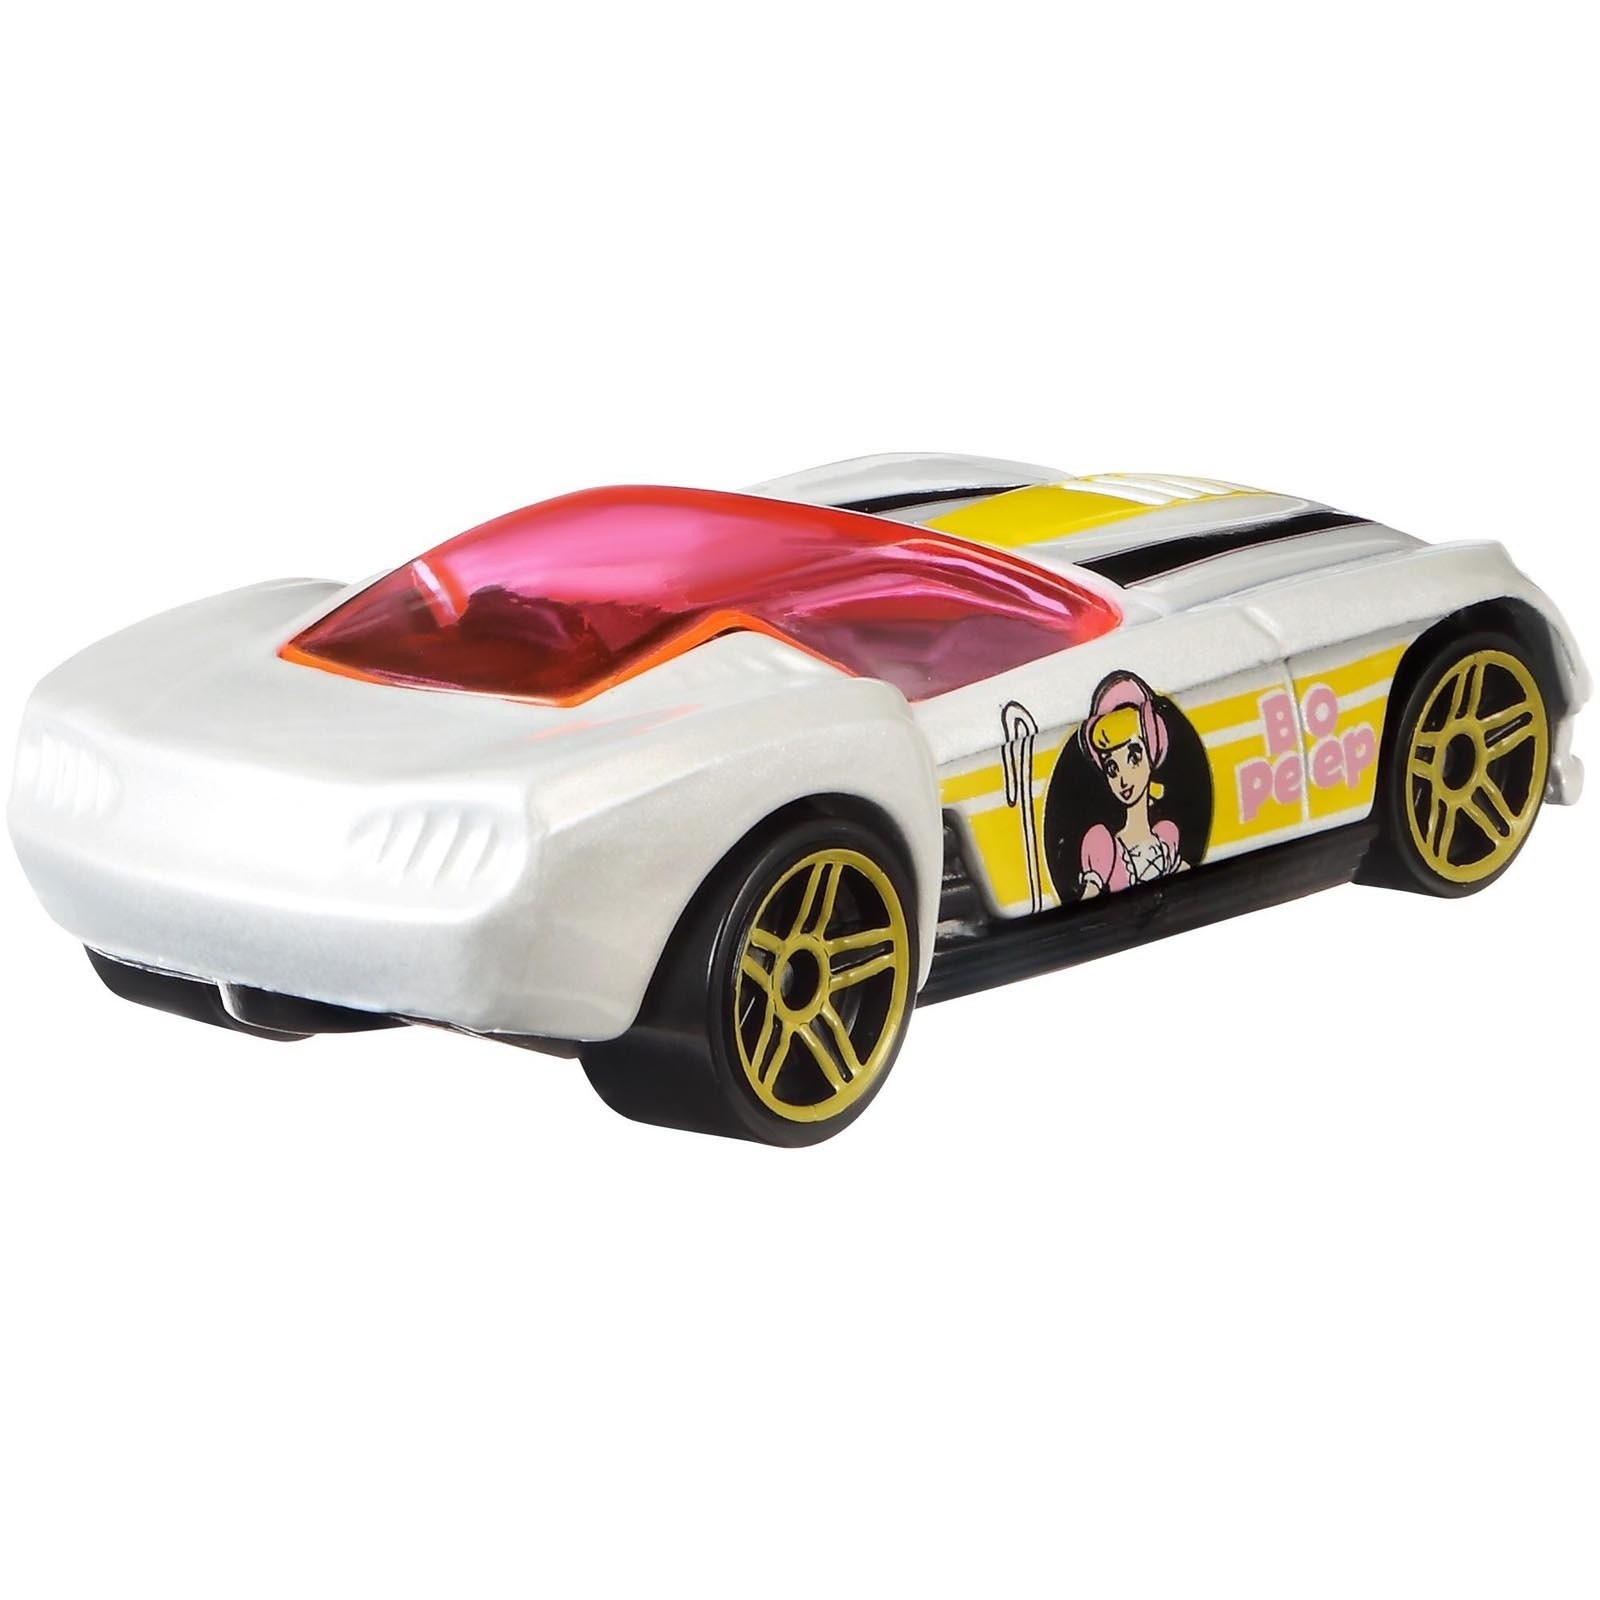 Hot Wheels - Pony - Up - Bo Peep - Toy Story - GBB30